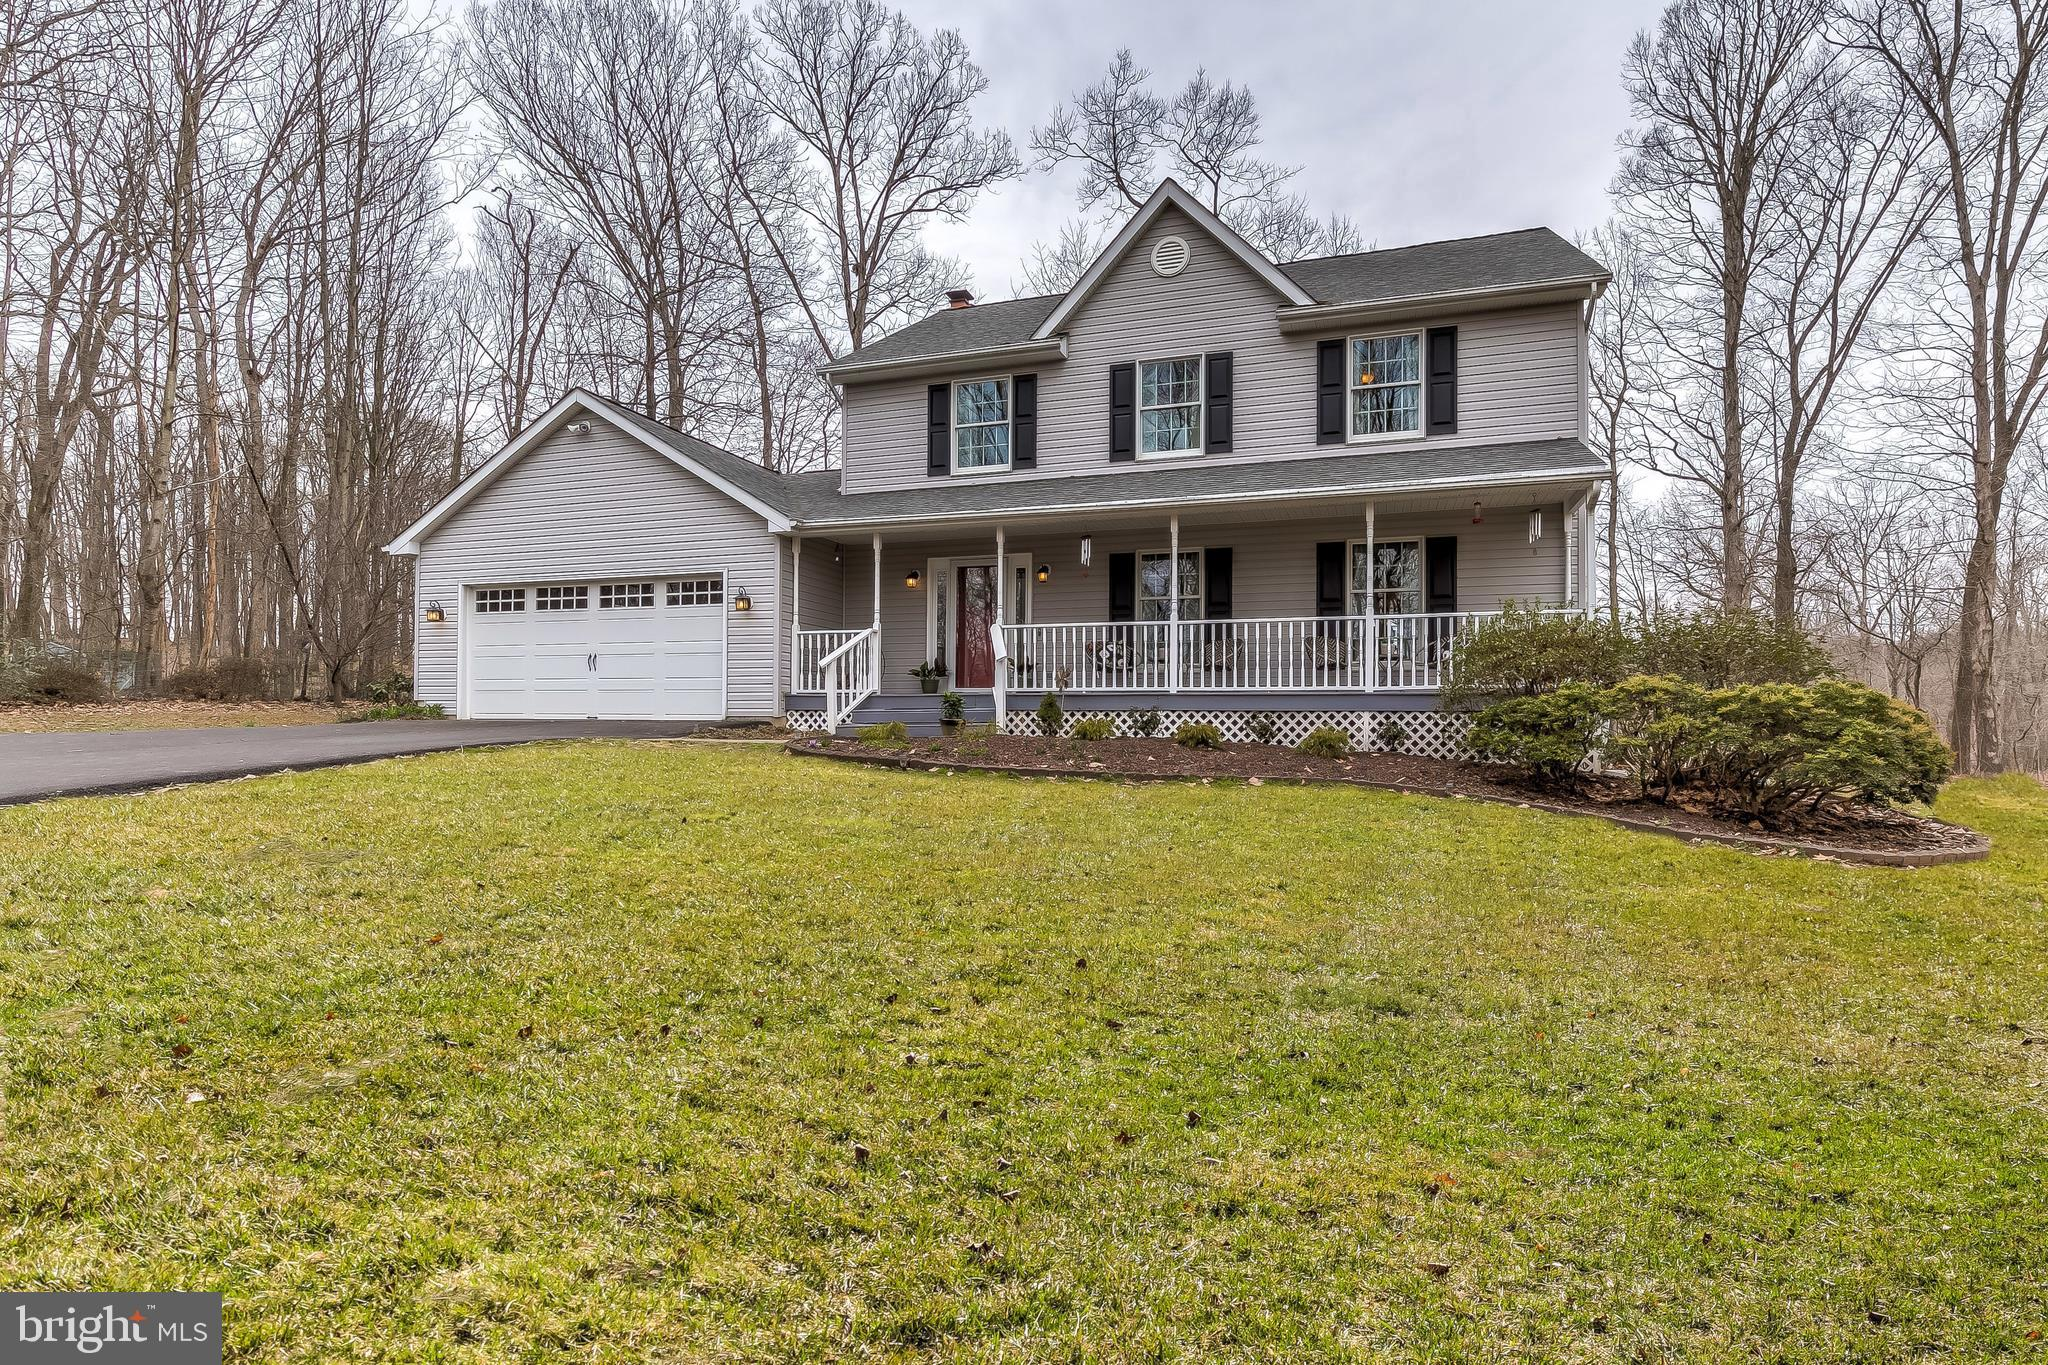 433 DUTROW ROAD, WESTMINSTER, MD 21157